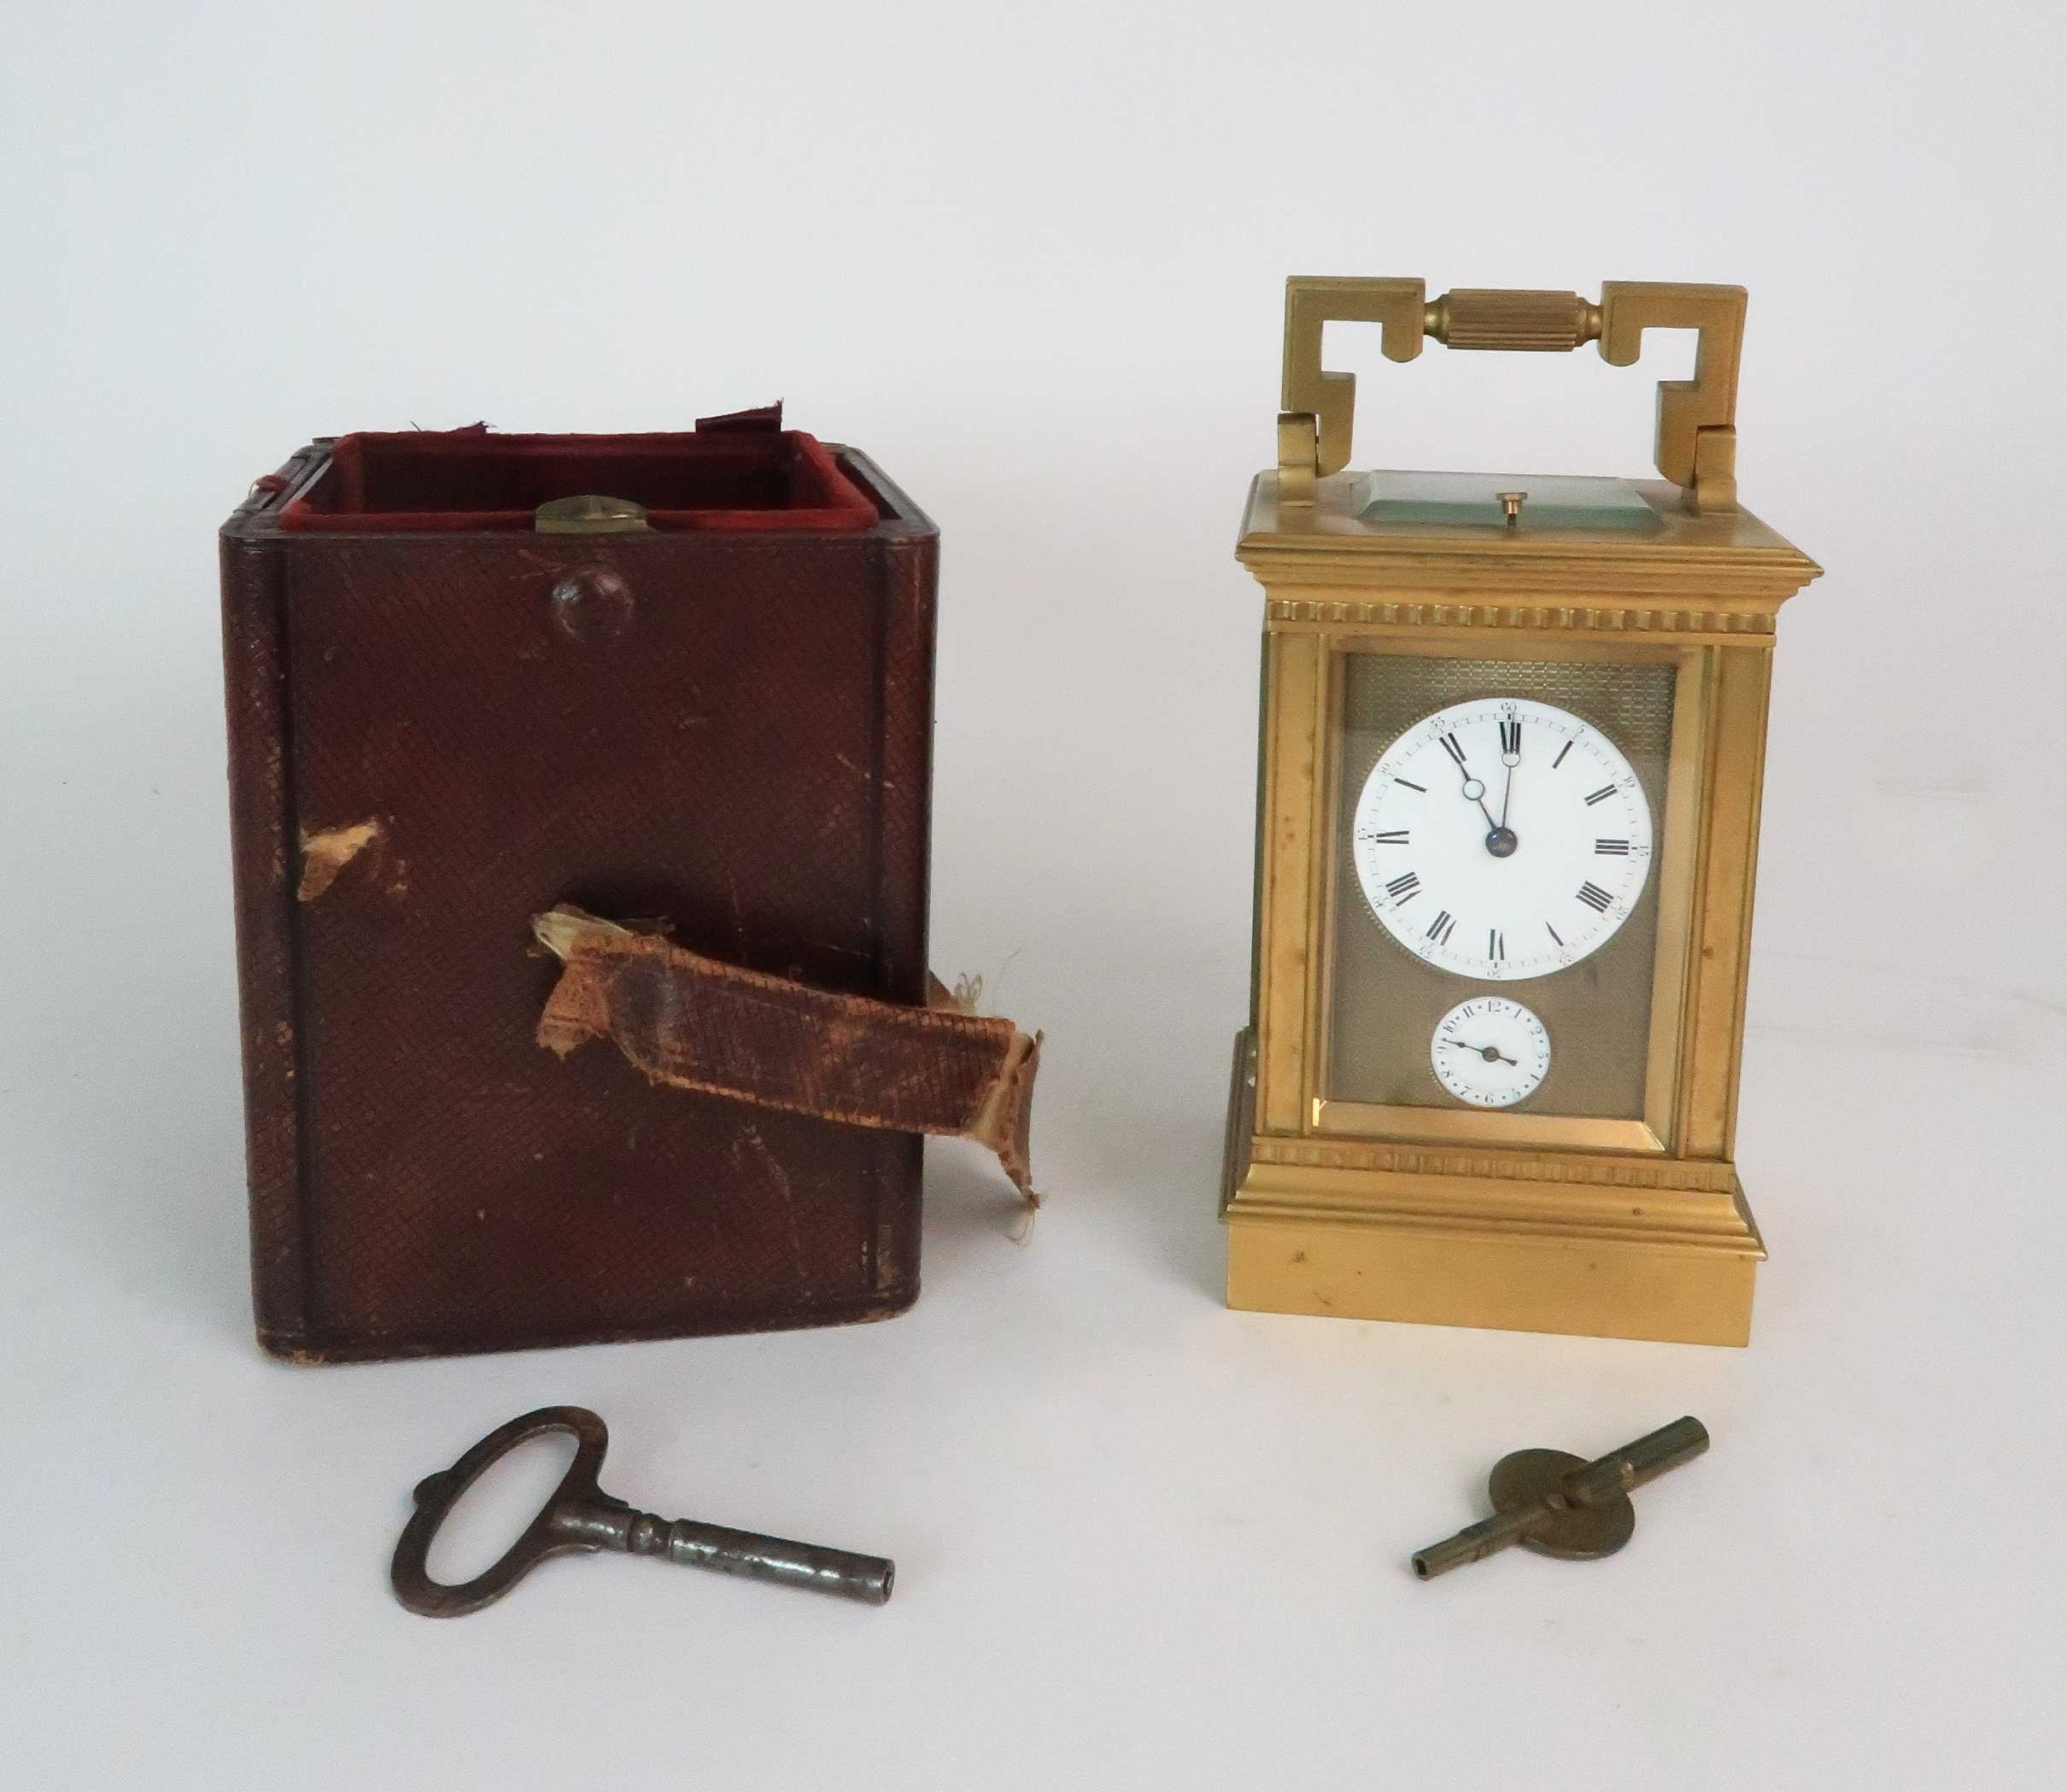 A FRENCH BRASS AND GLASS REPEATER CARRIAGE CLOCK the enamel dial with Roman numerals, with - Image 8 of 8